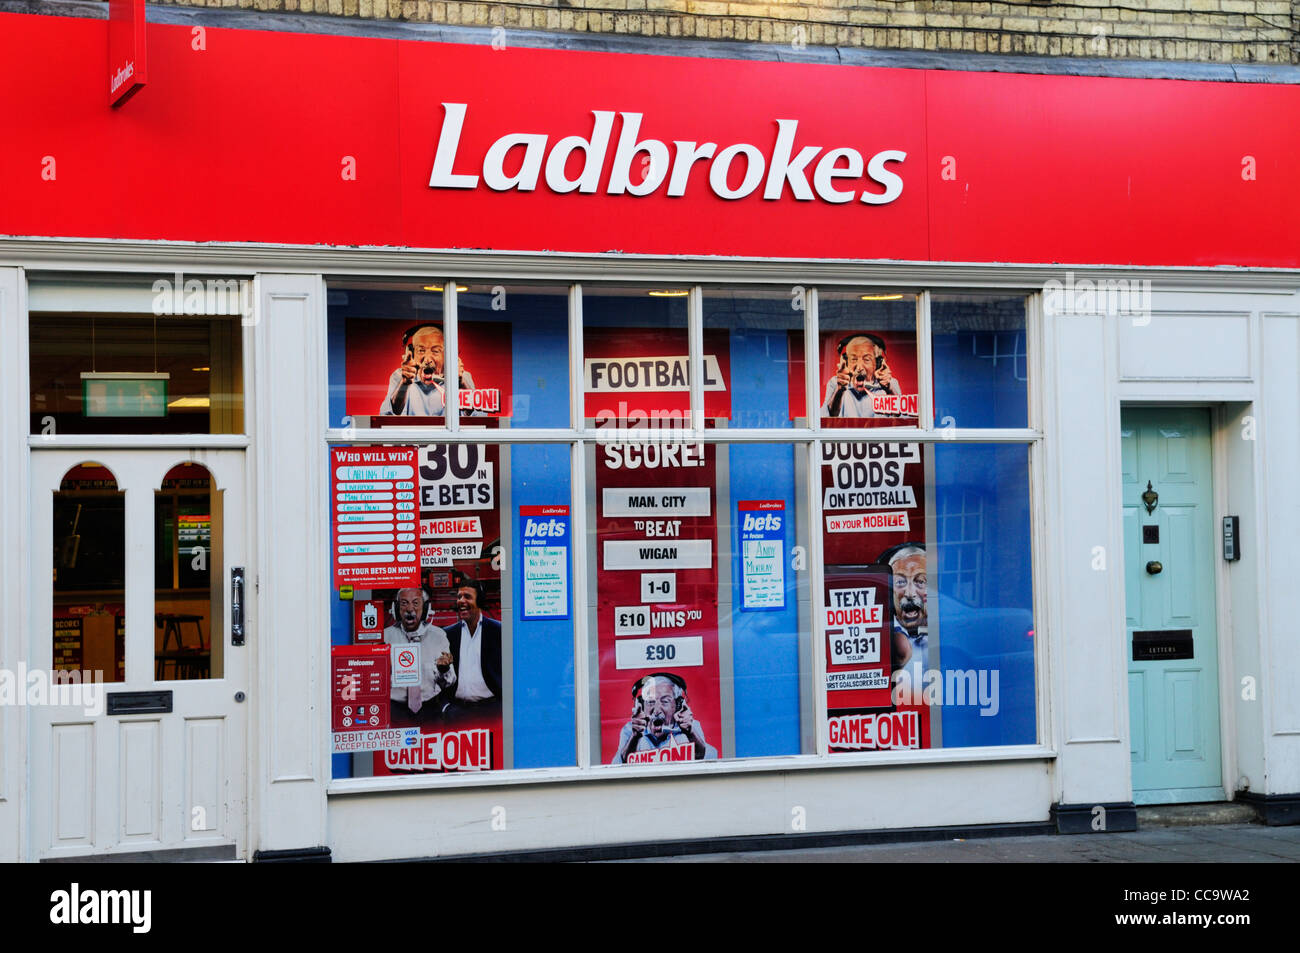 Ladbrokes Betting Shop, Cambridge, England, UK - Stock Image